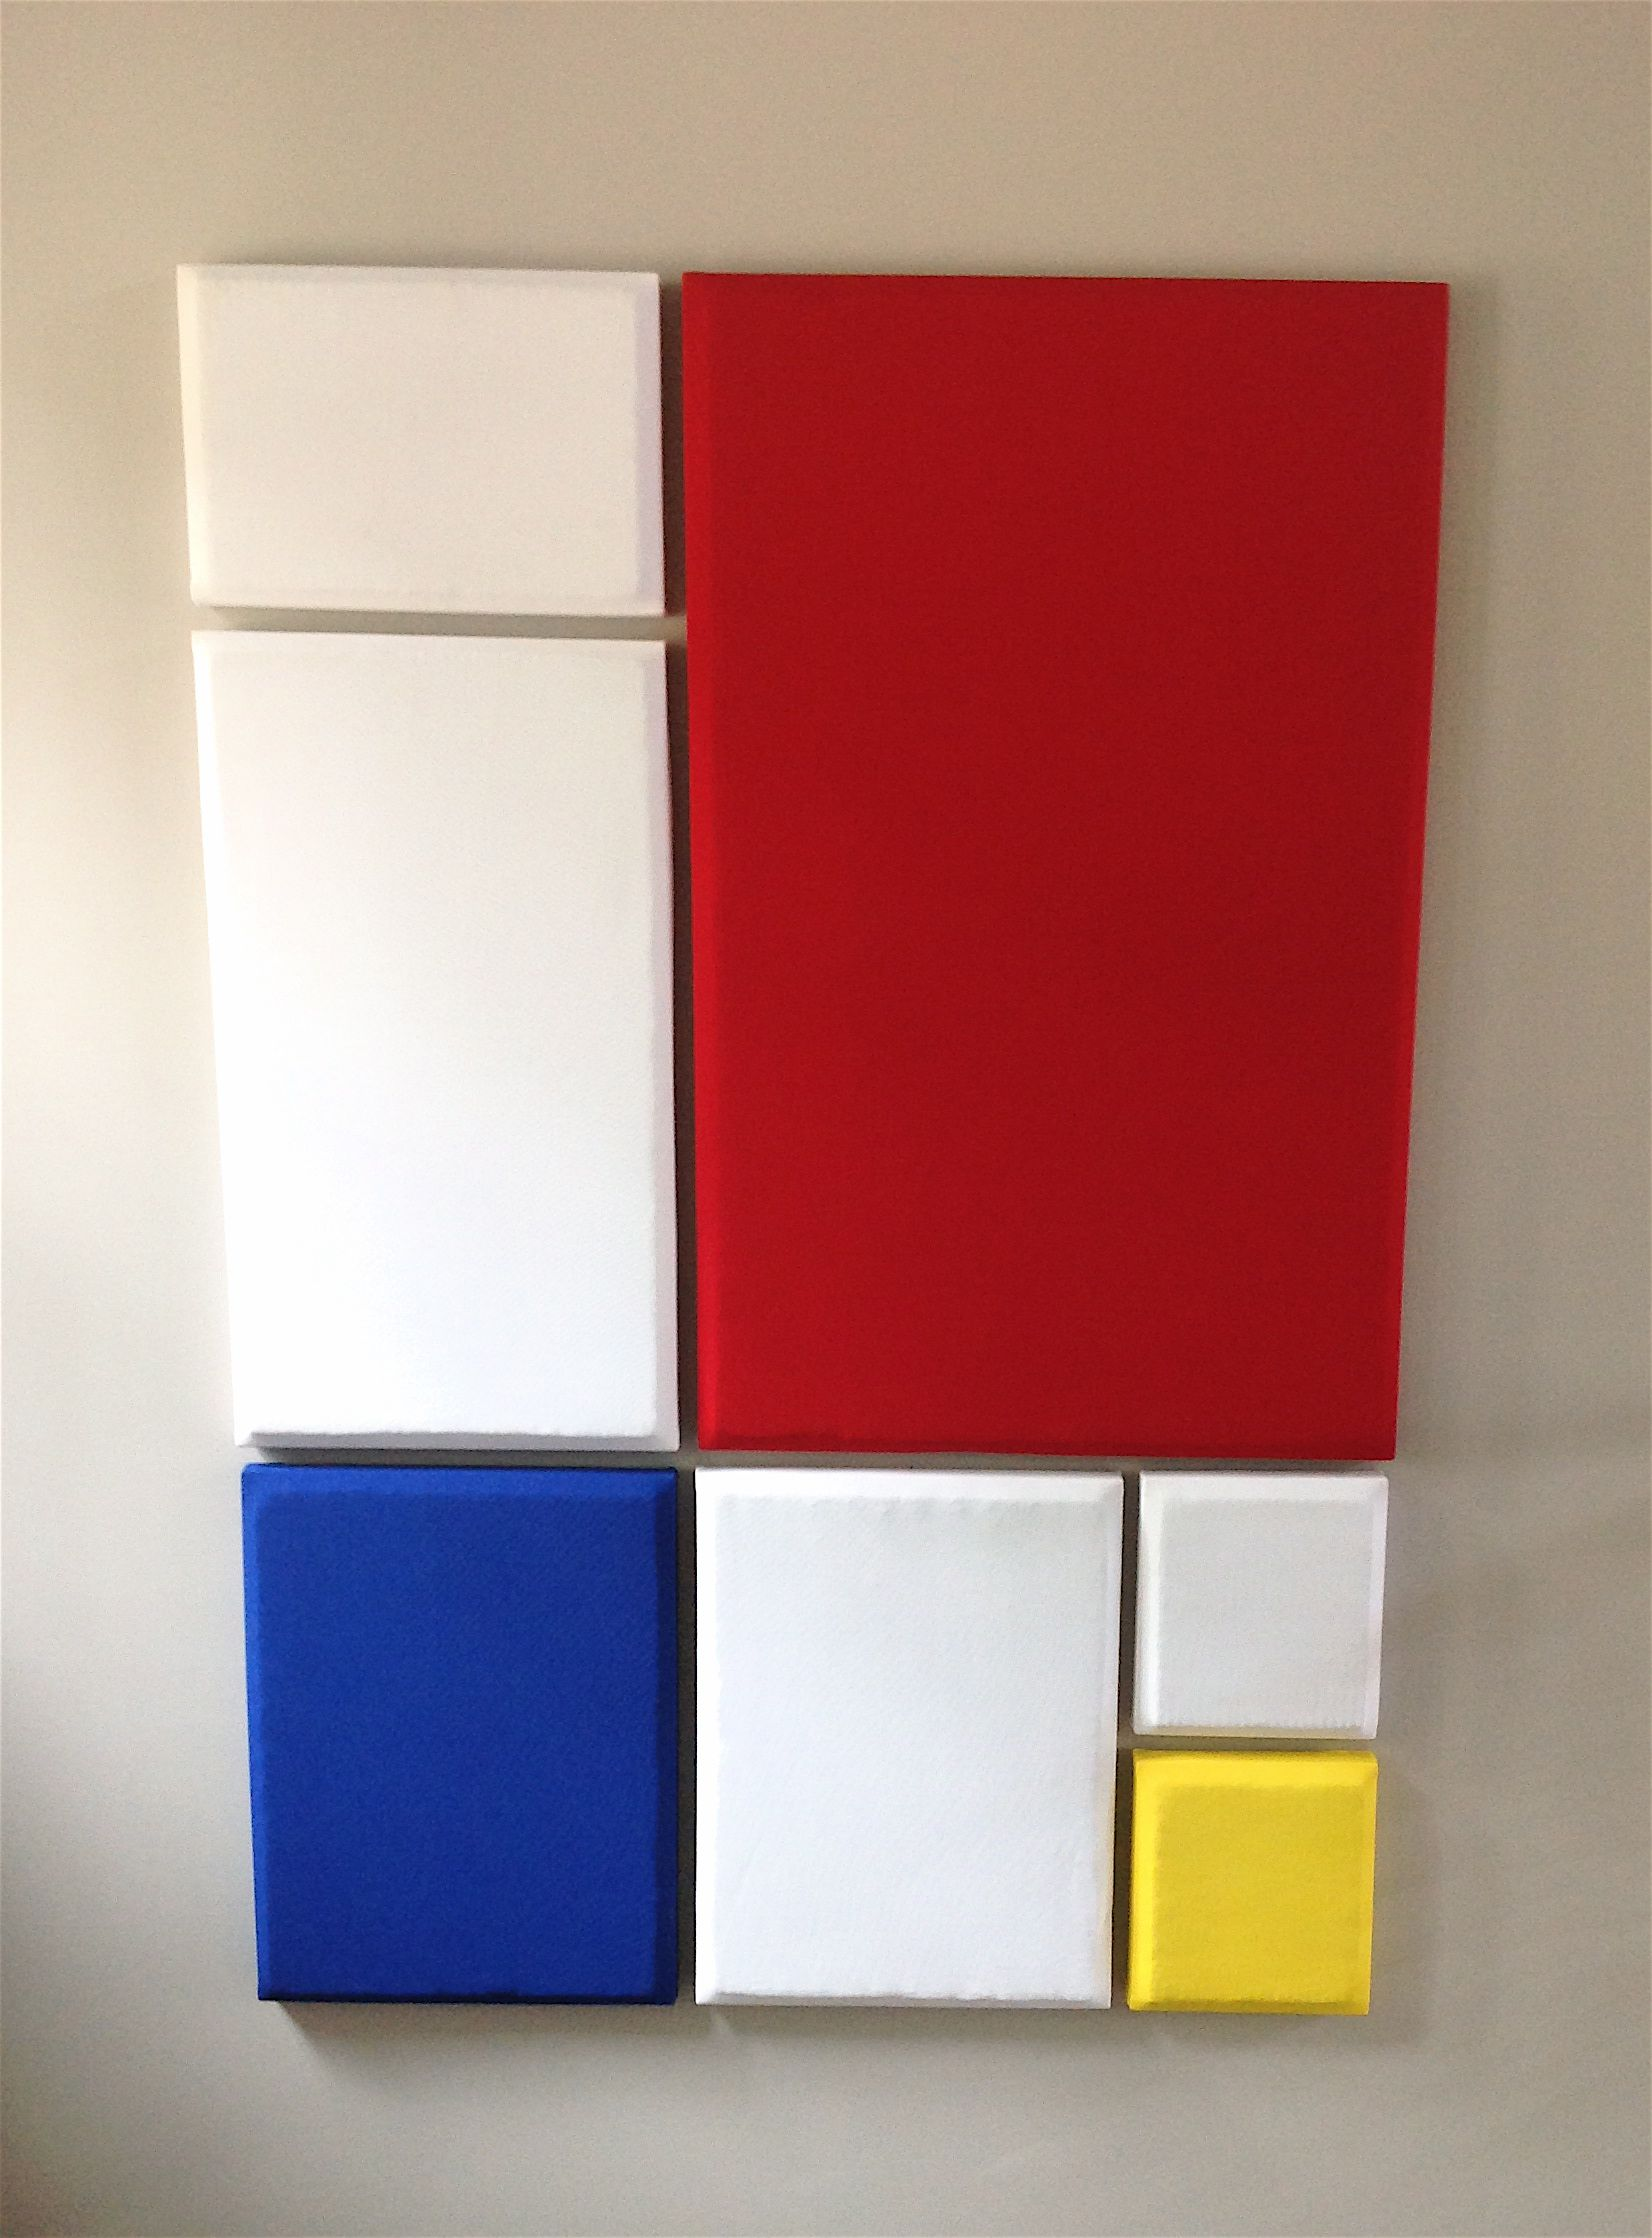 acoustic absorption panels masquerading as mondrian art on acoustic wall panels id=79410